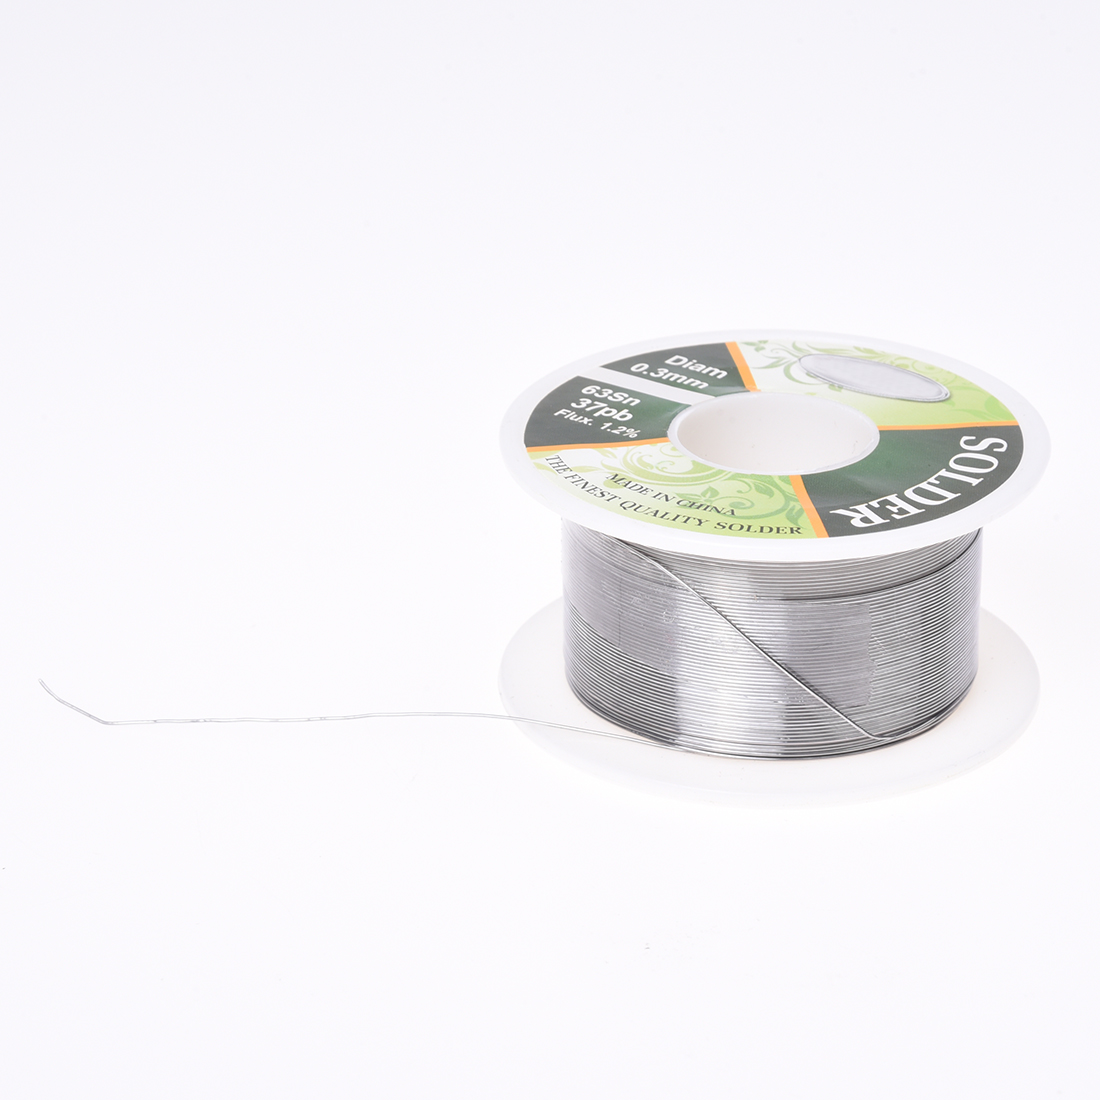 Promotion! Ya Xun - The finest quality Solder 0.3mm Dia,1.2% Flux,63Sn/37Pb, Wire Reel письменные принадлежности ya xun xuan